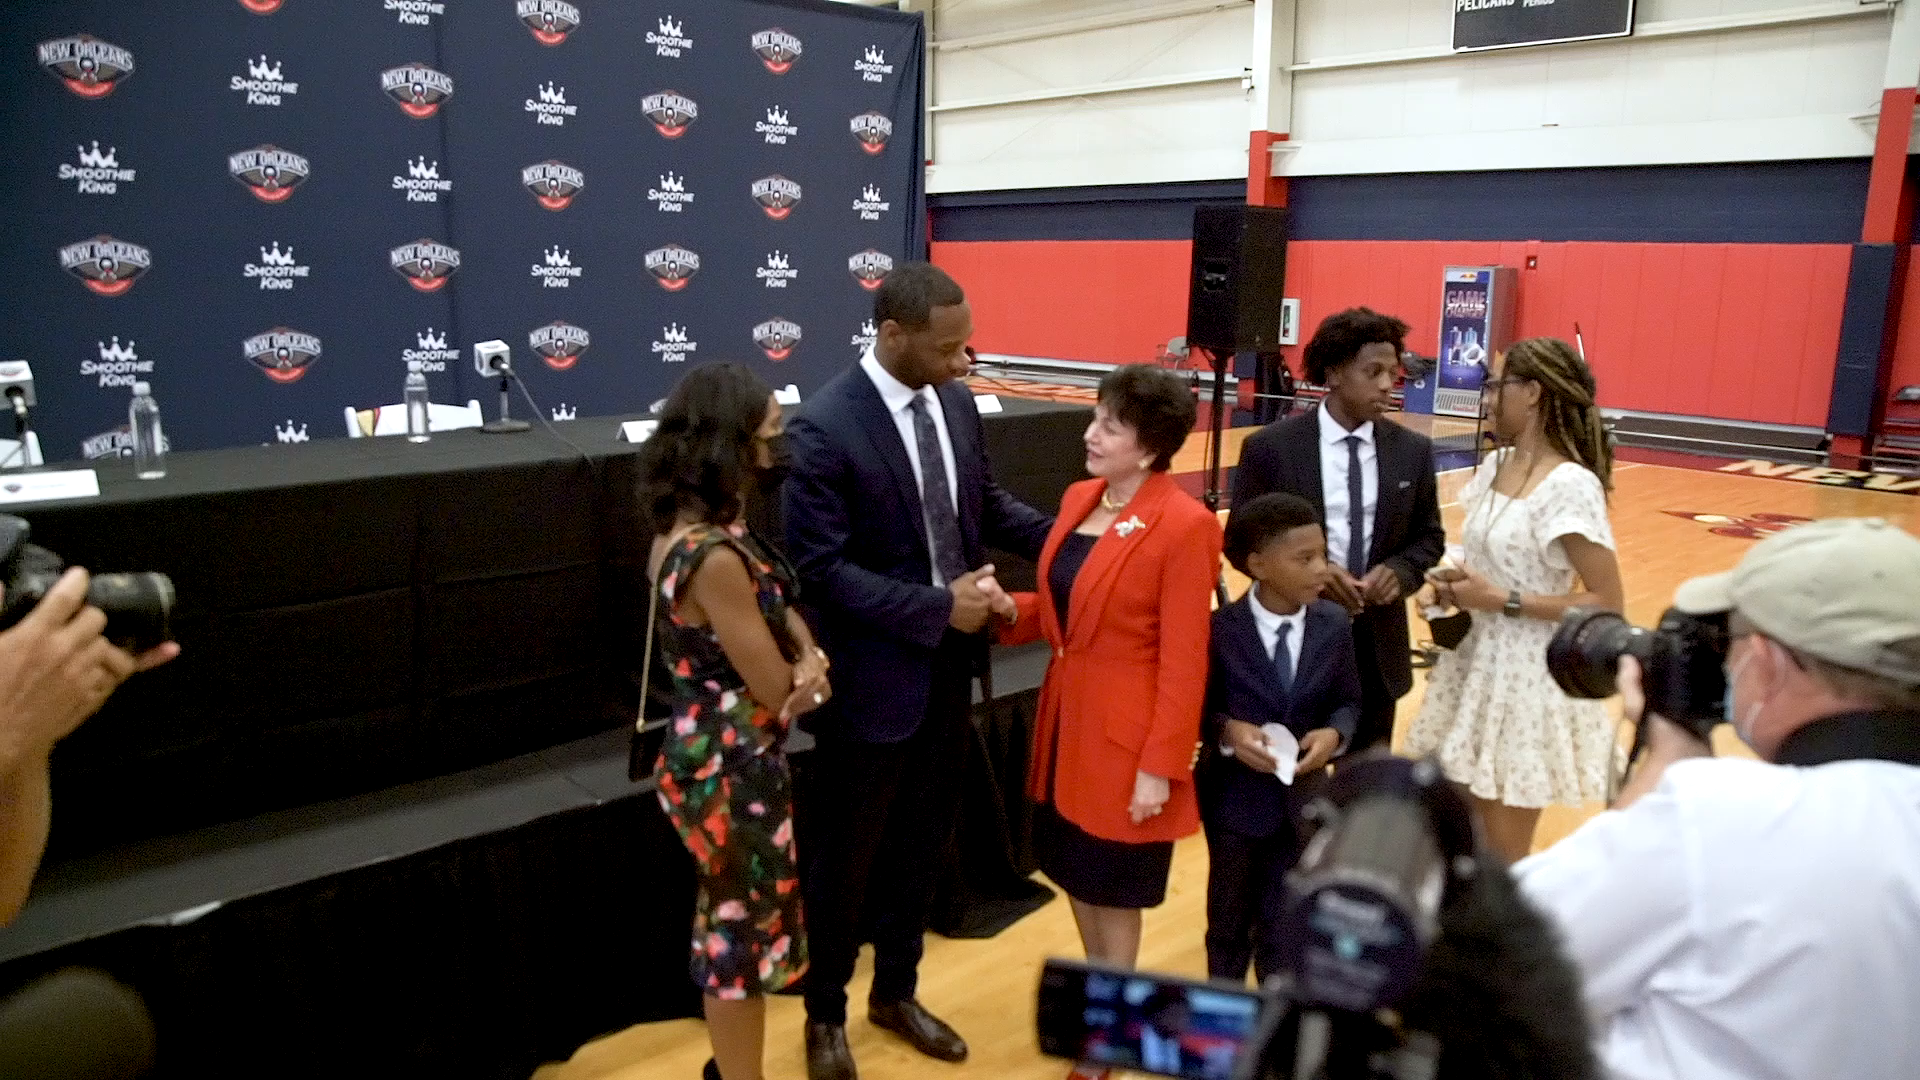 Behind the scenes at Pelicans head coach Willie Green's first press conference